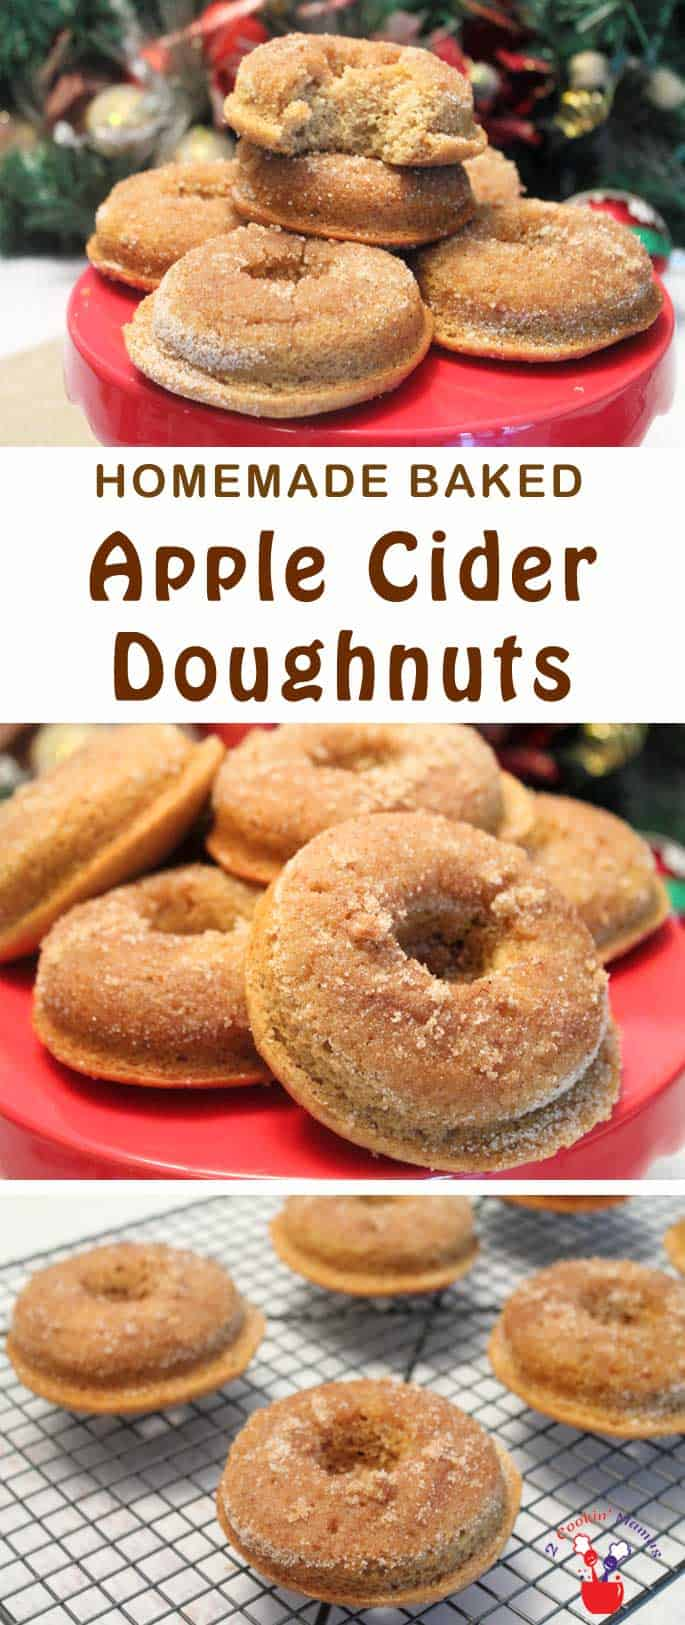 Baked Apple Cider Doughnuts | 2 Cookin Mamas Fresh-baked fluffy apple cider doughnuts are a great way to start any day! They're topped off with cinnamon sugar to make this one special treat.